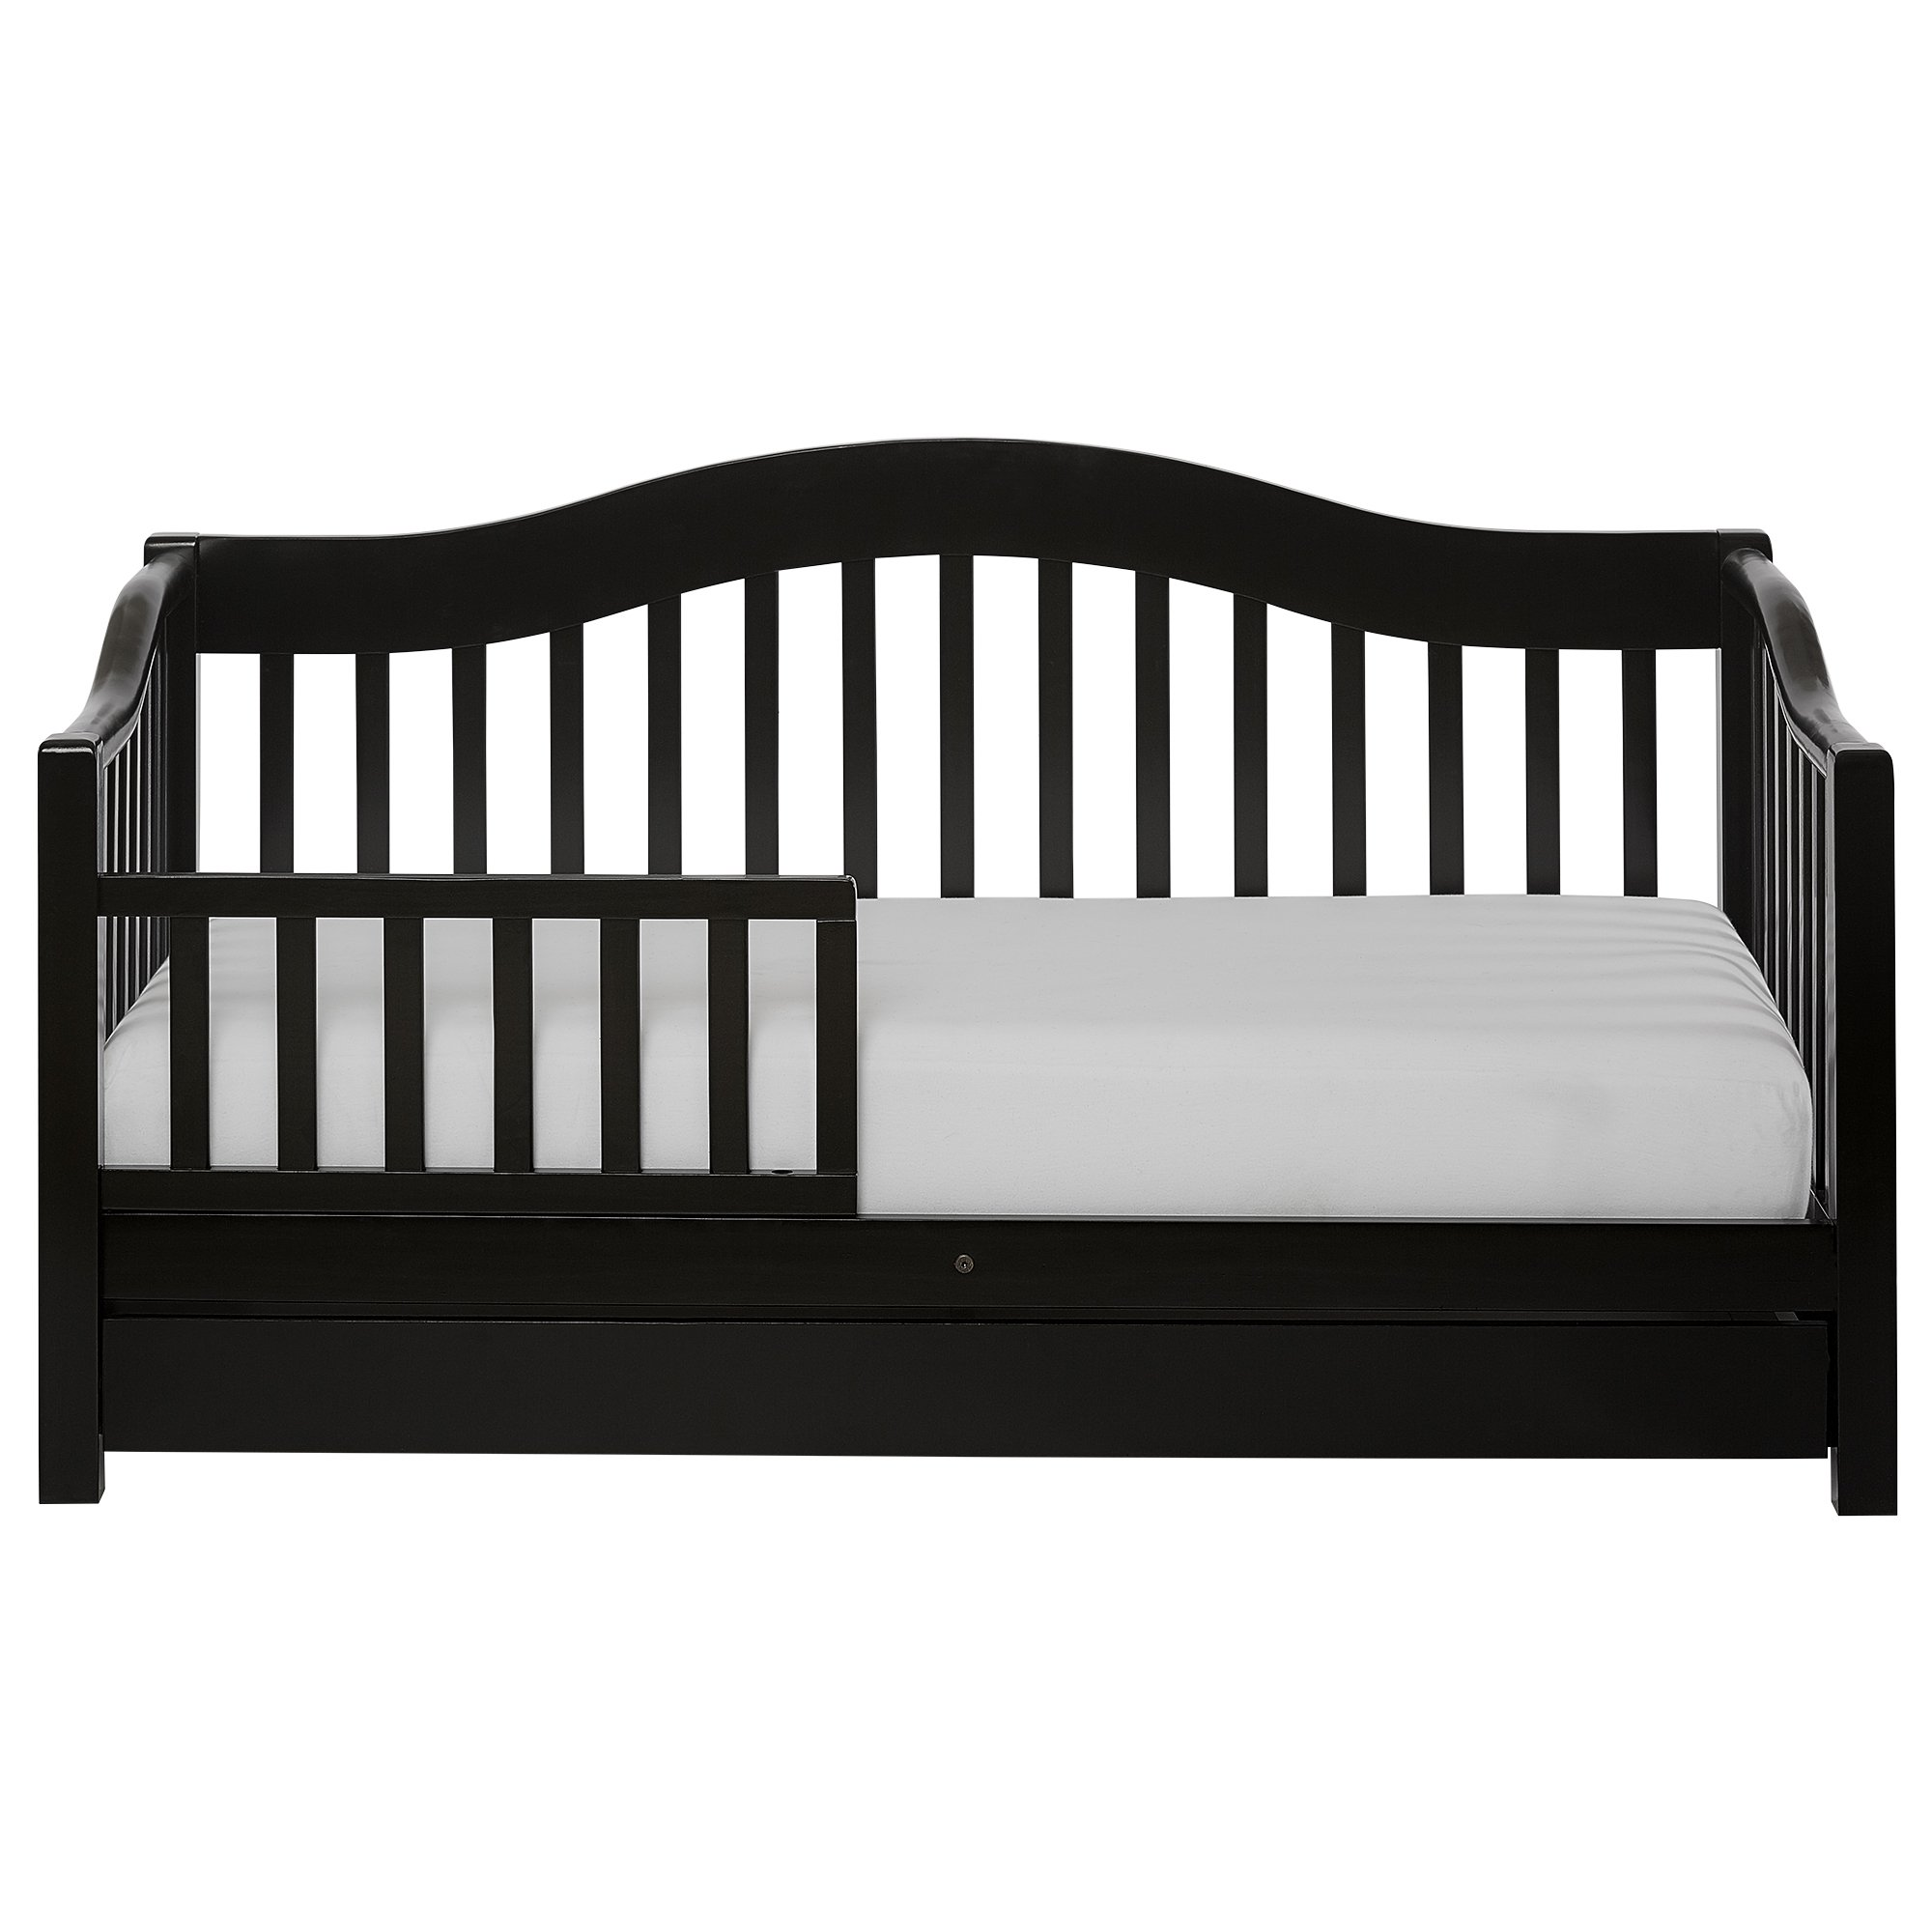 Dream On Me Toddler Day Bed, Black by Dream On Me